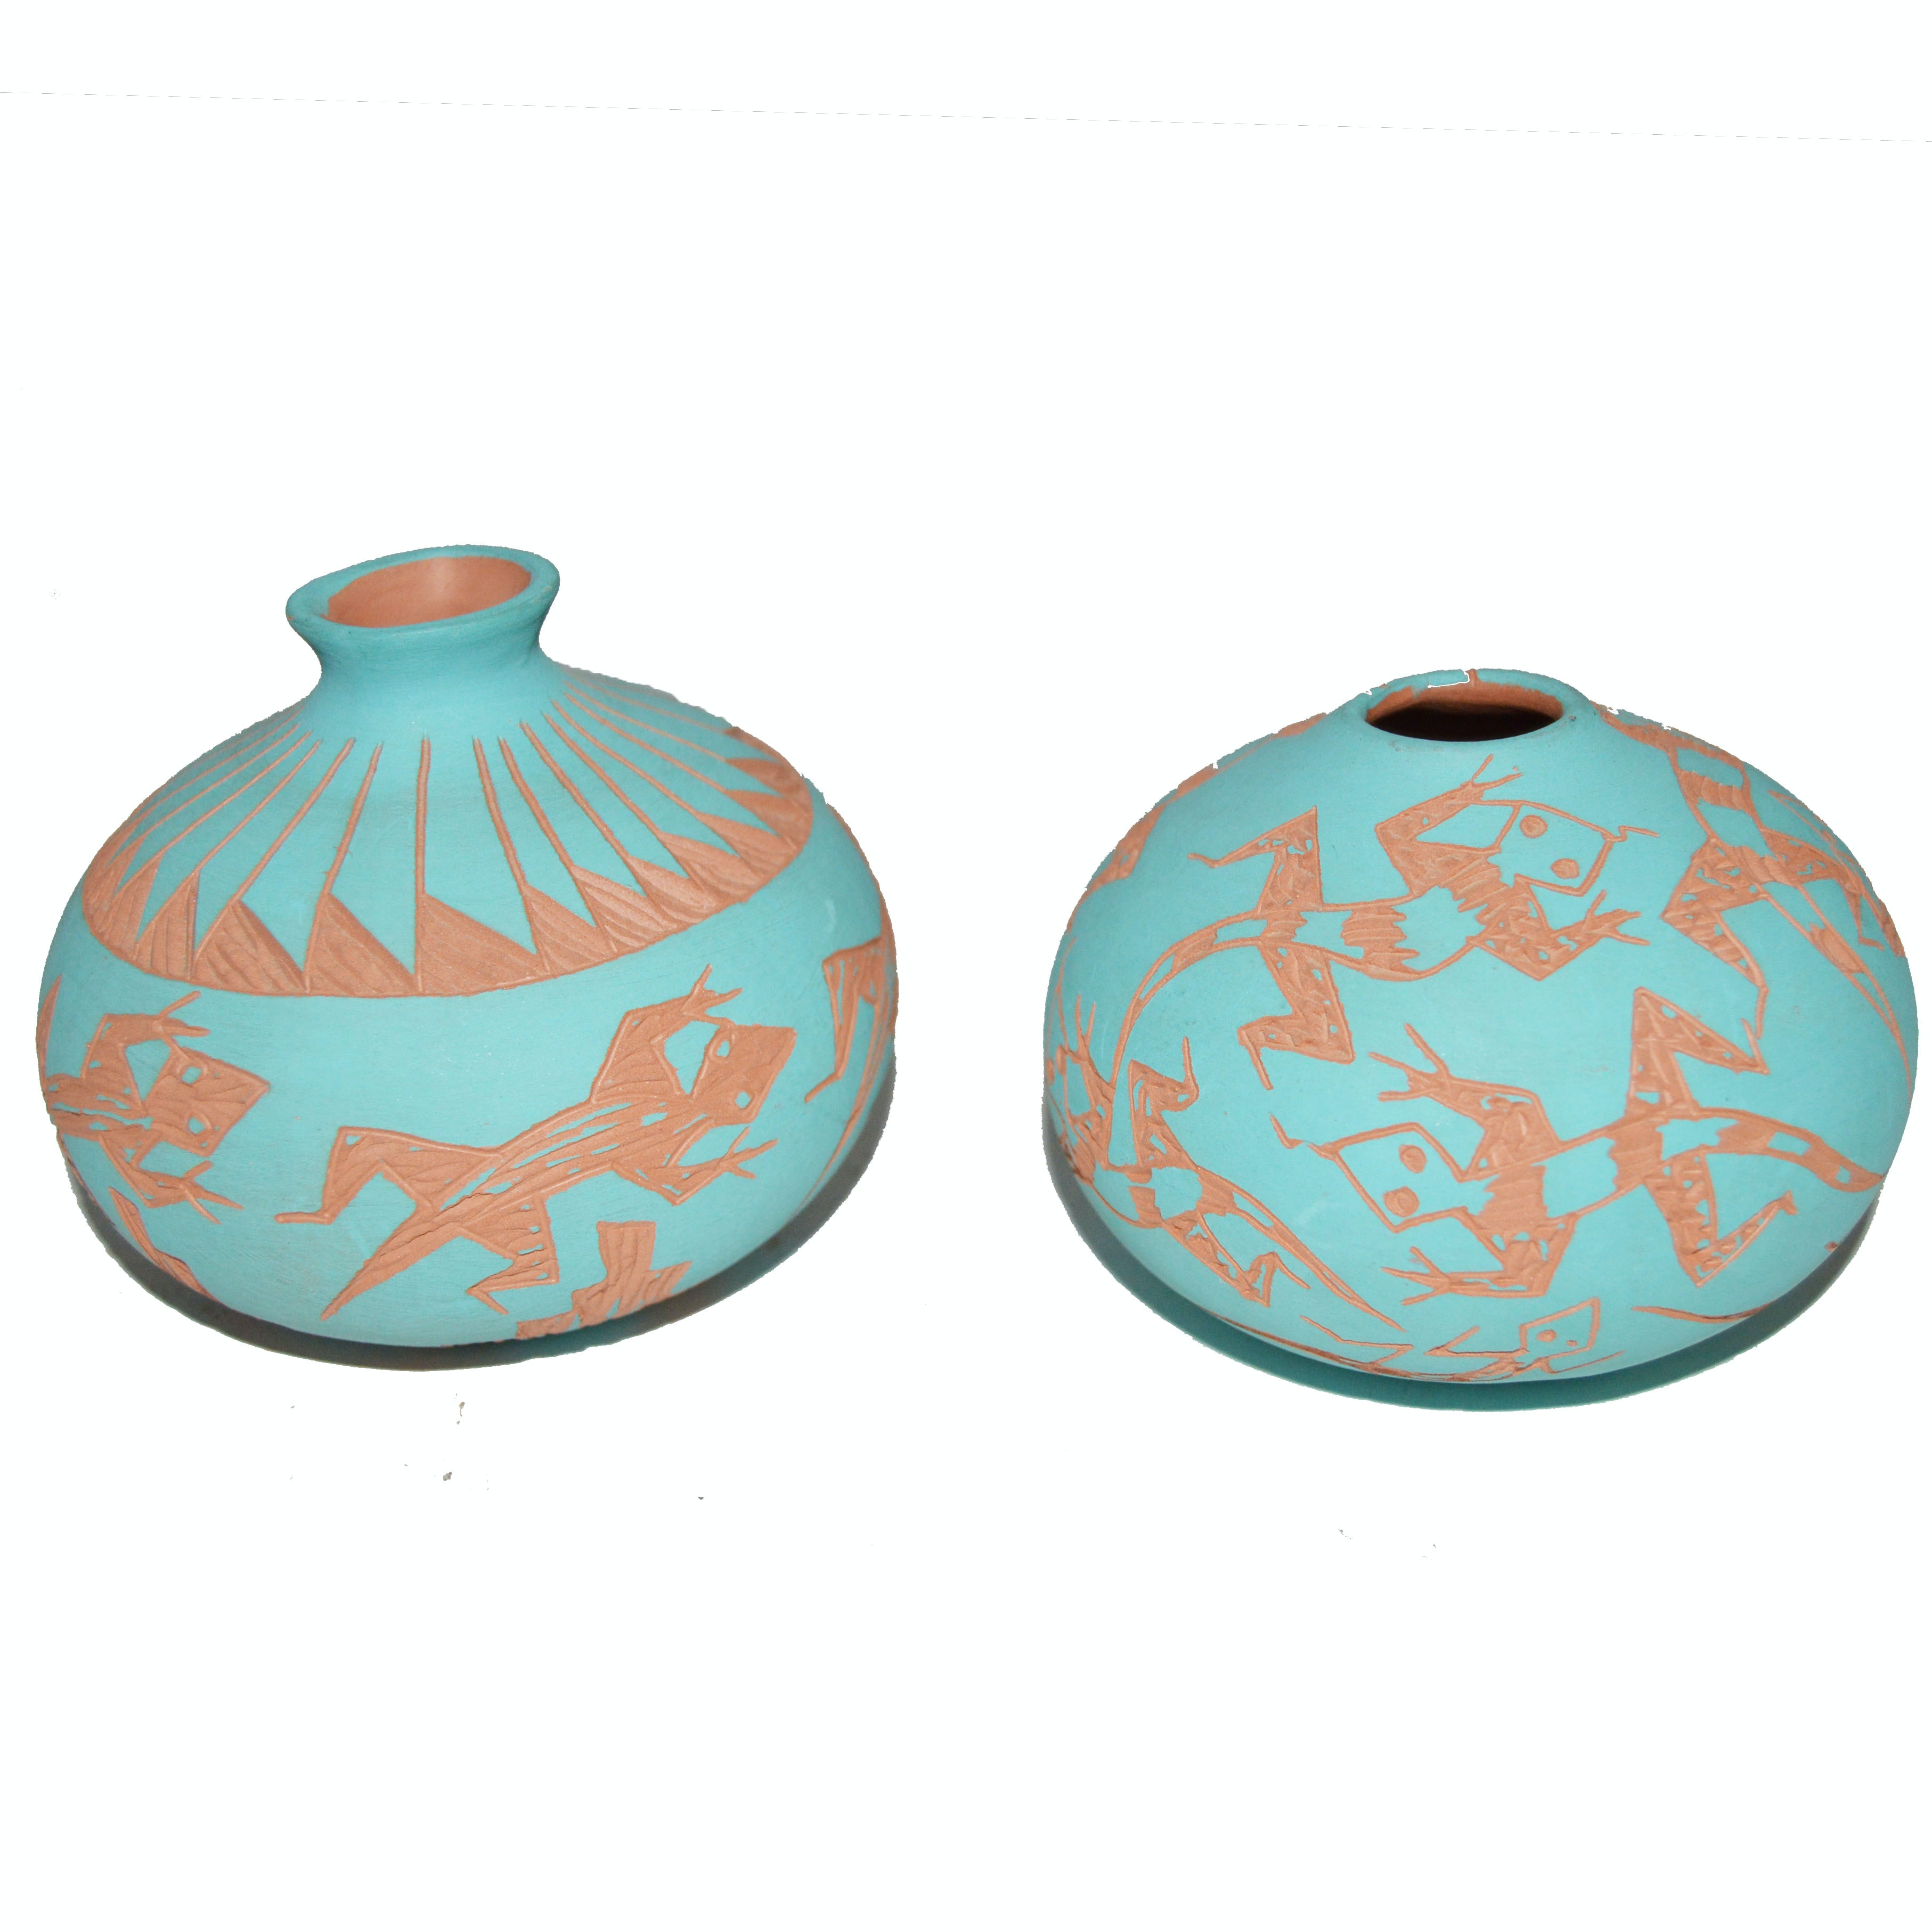 Pair of Terracotta Pottery Pieces